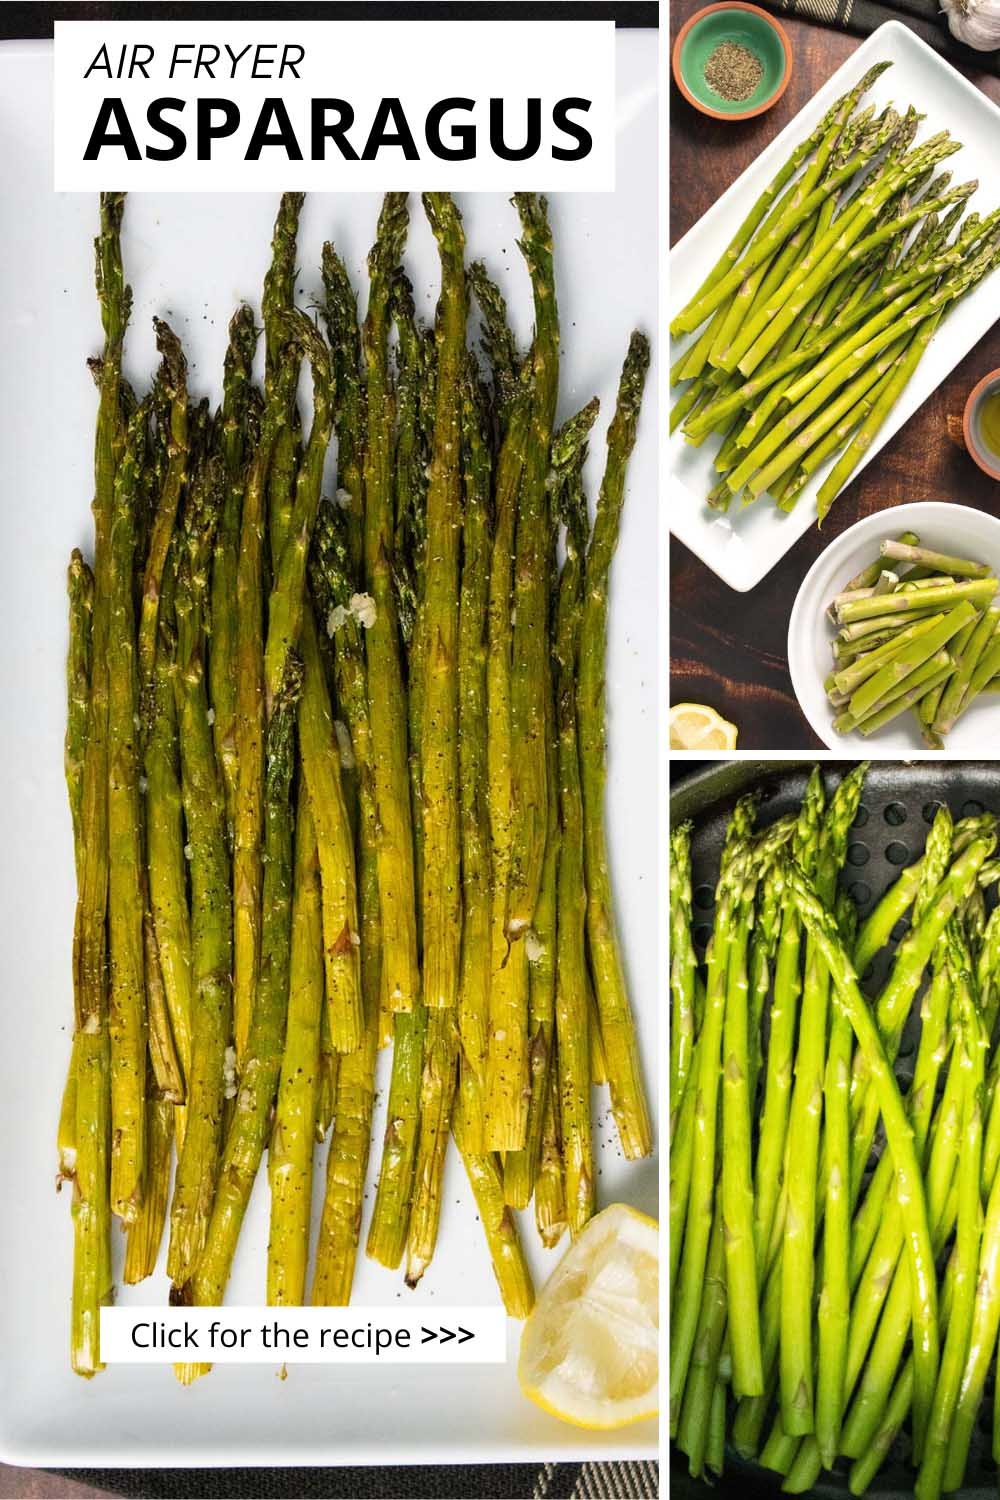 image collage of cooked asparagus on a plate, asparagus with the ends trimmed off, and asparagus in air fryer basket